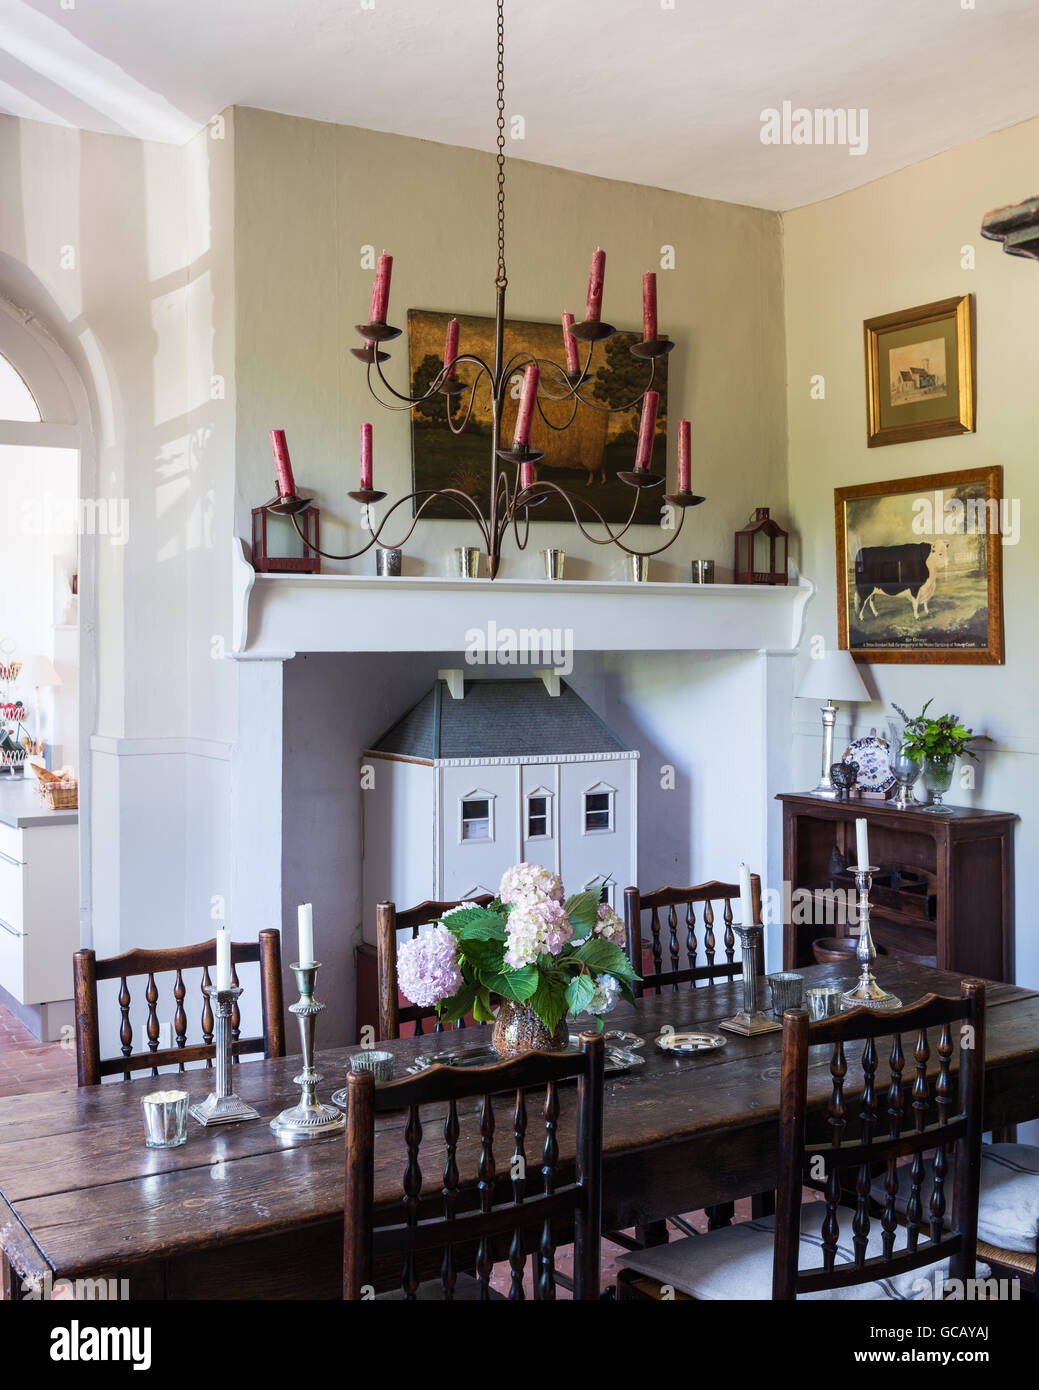 18th Century Oak Table And Yorkshire Chairs In Dining Room With Terracotta Flooring Ceiling Candelabra